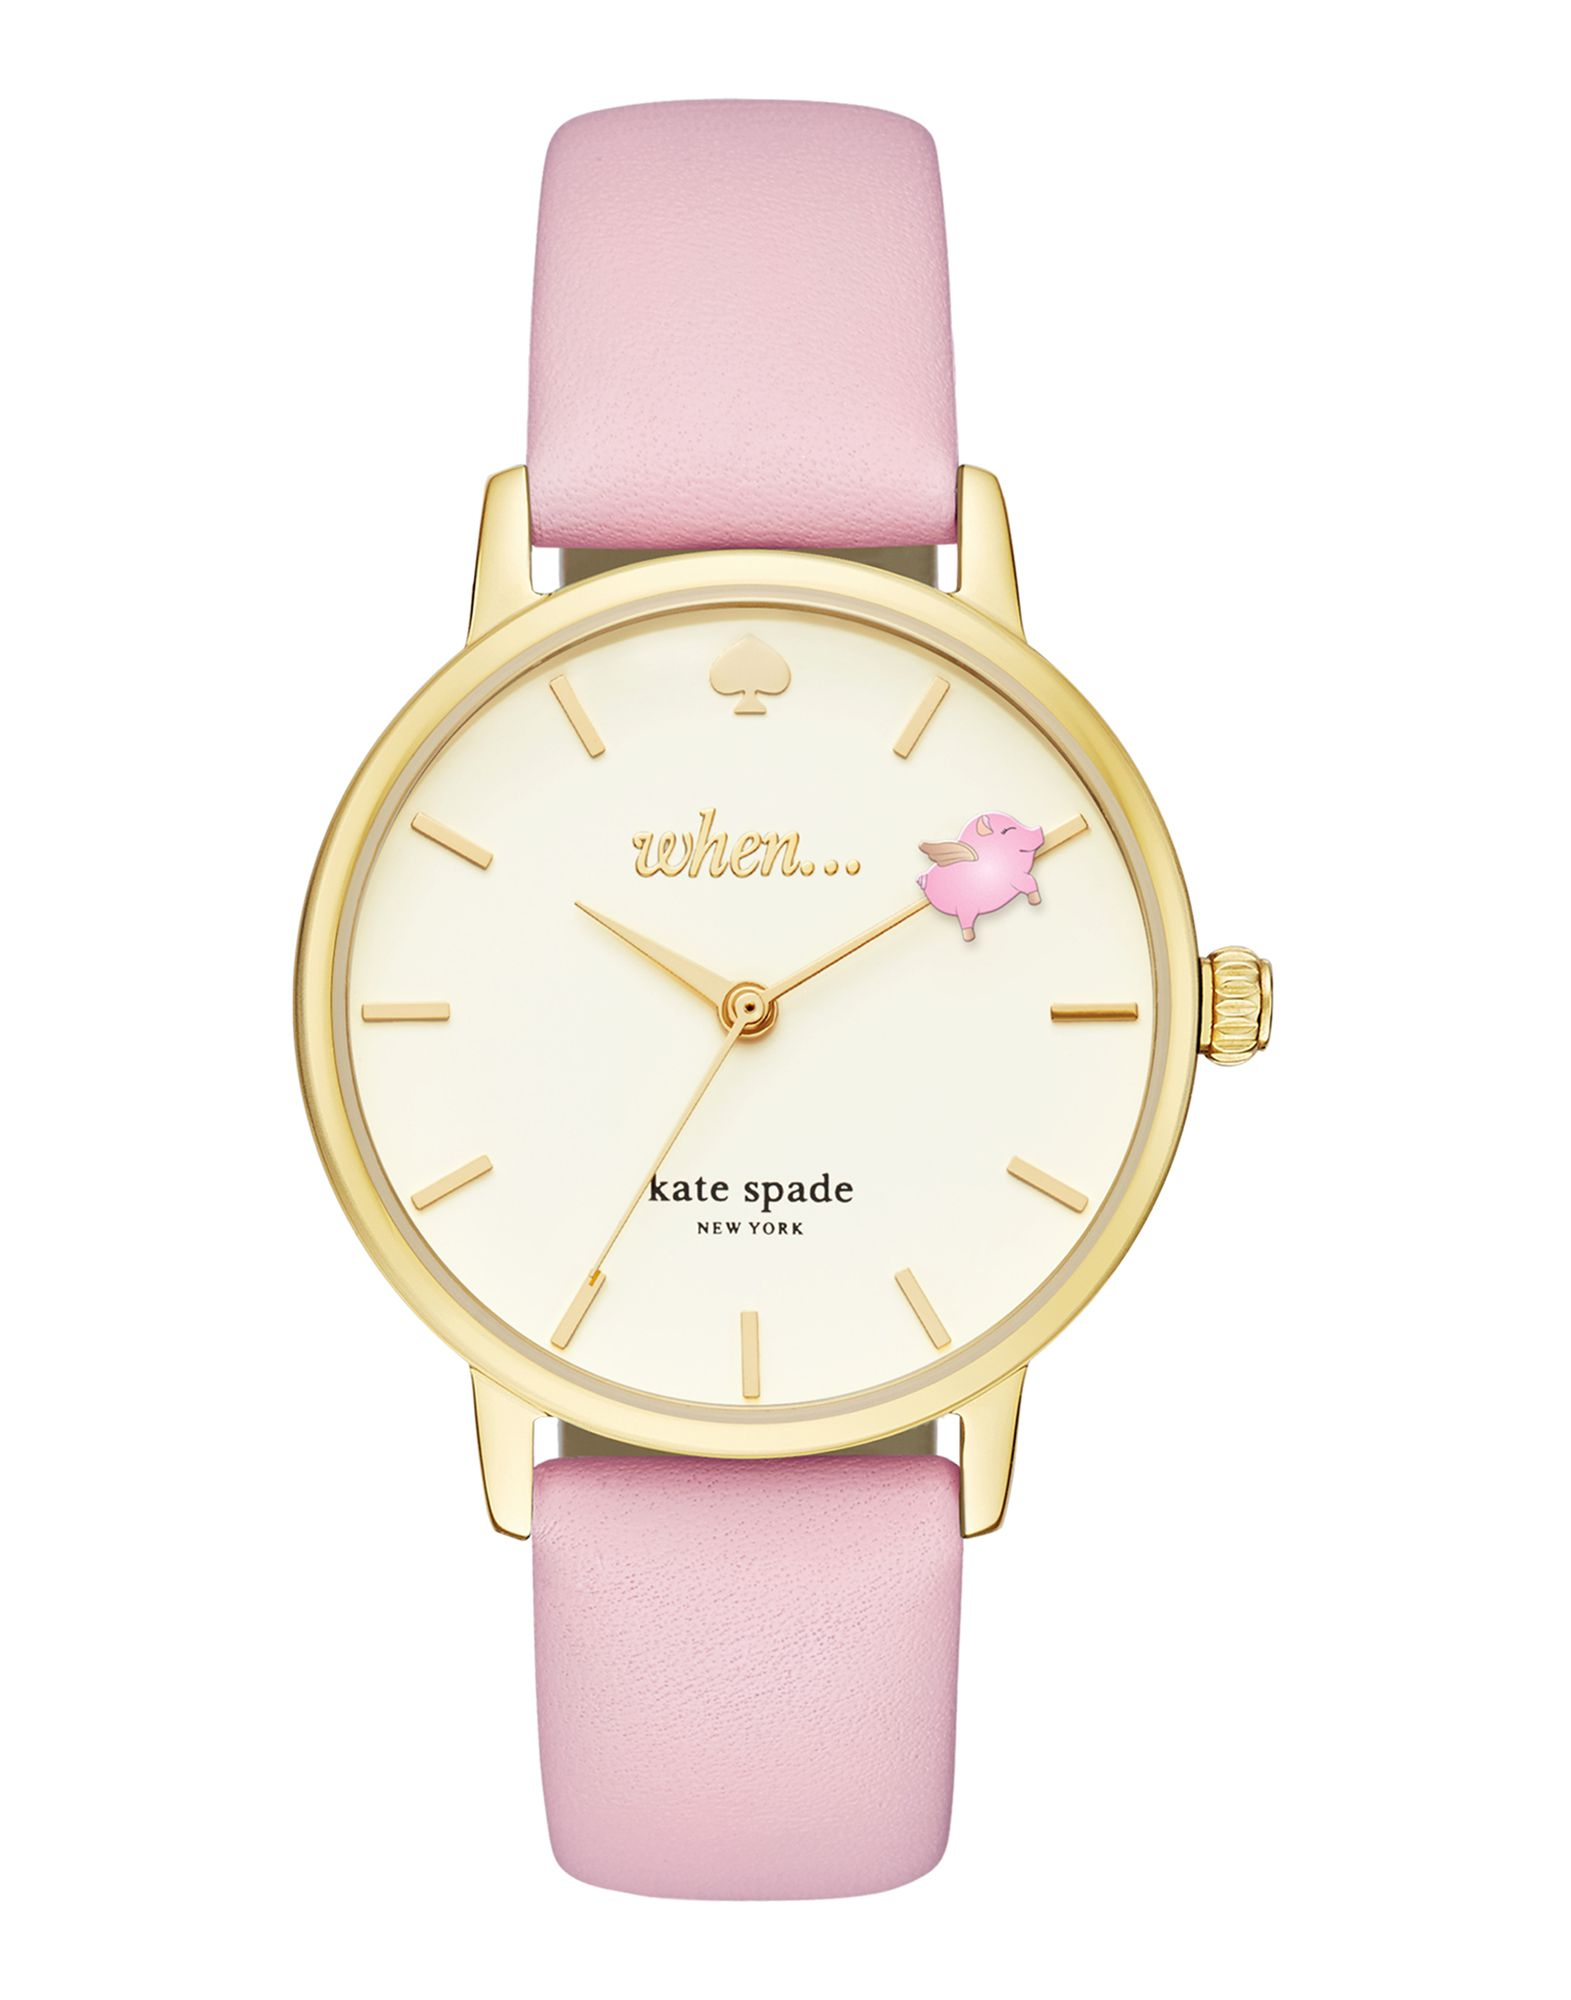 Kate Spade New York Wrist Watches